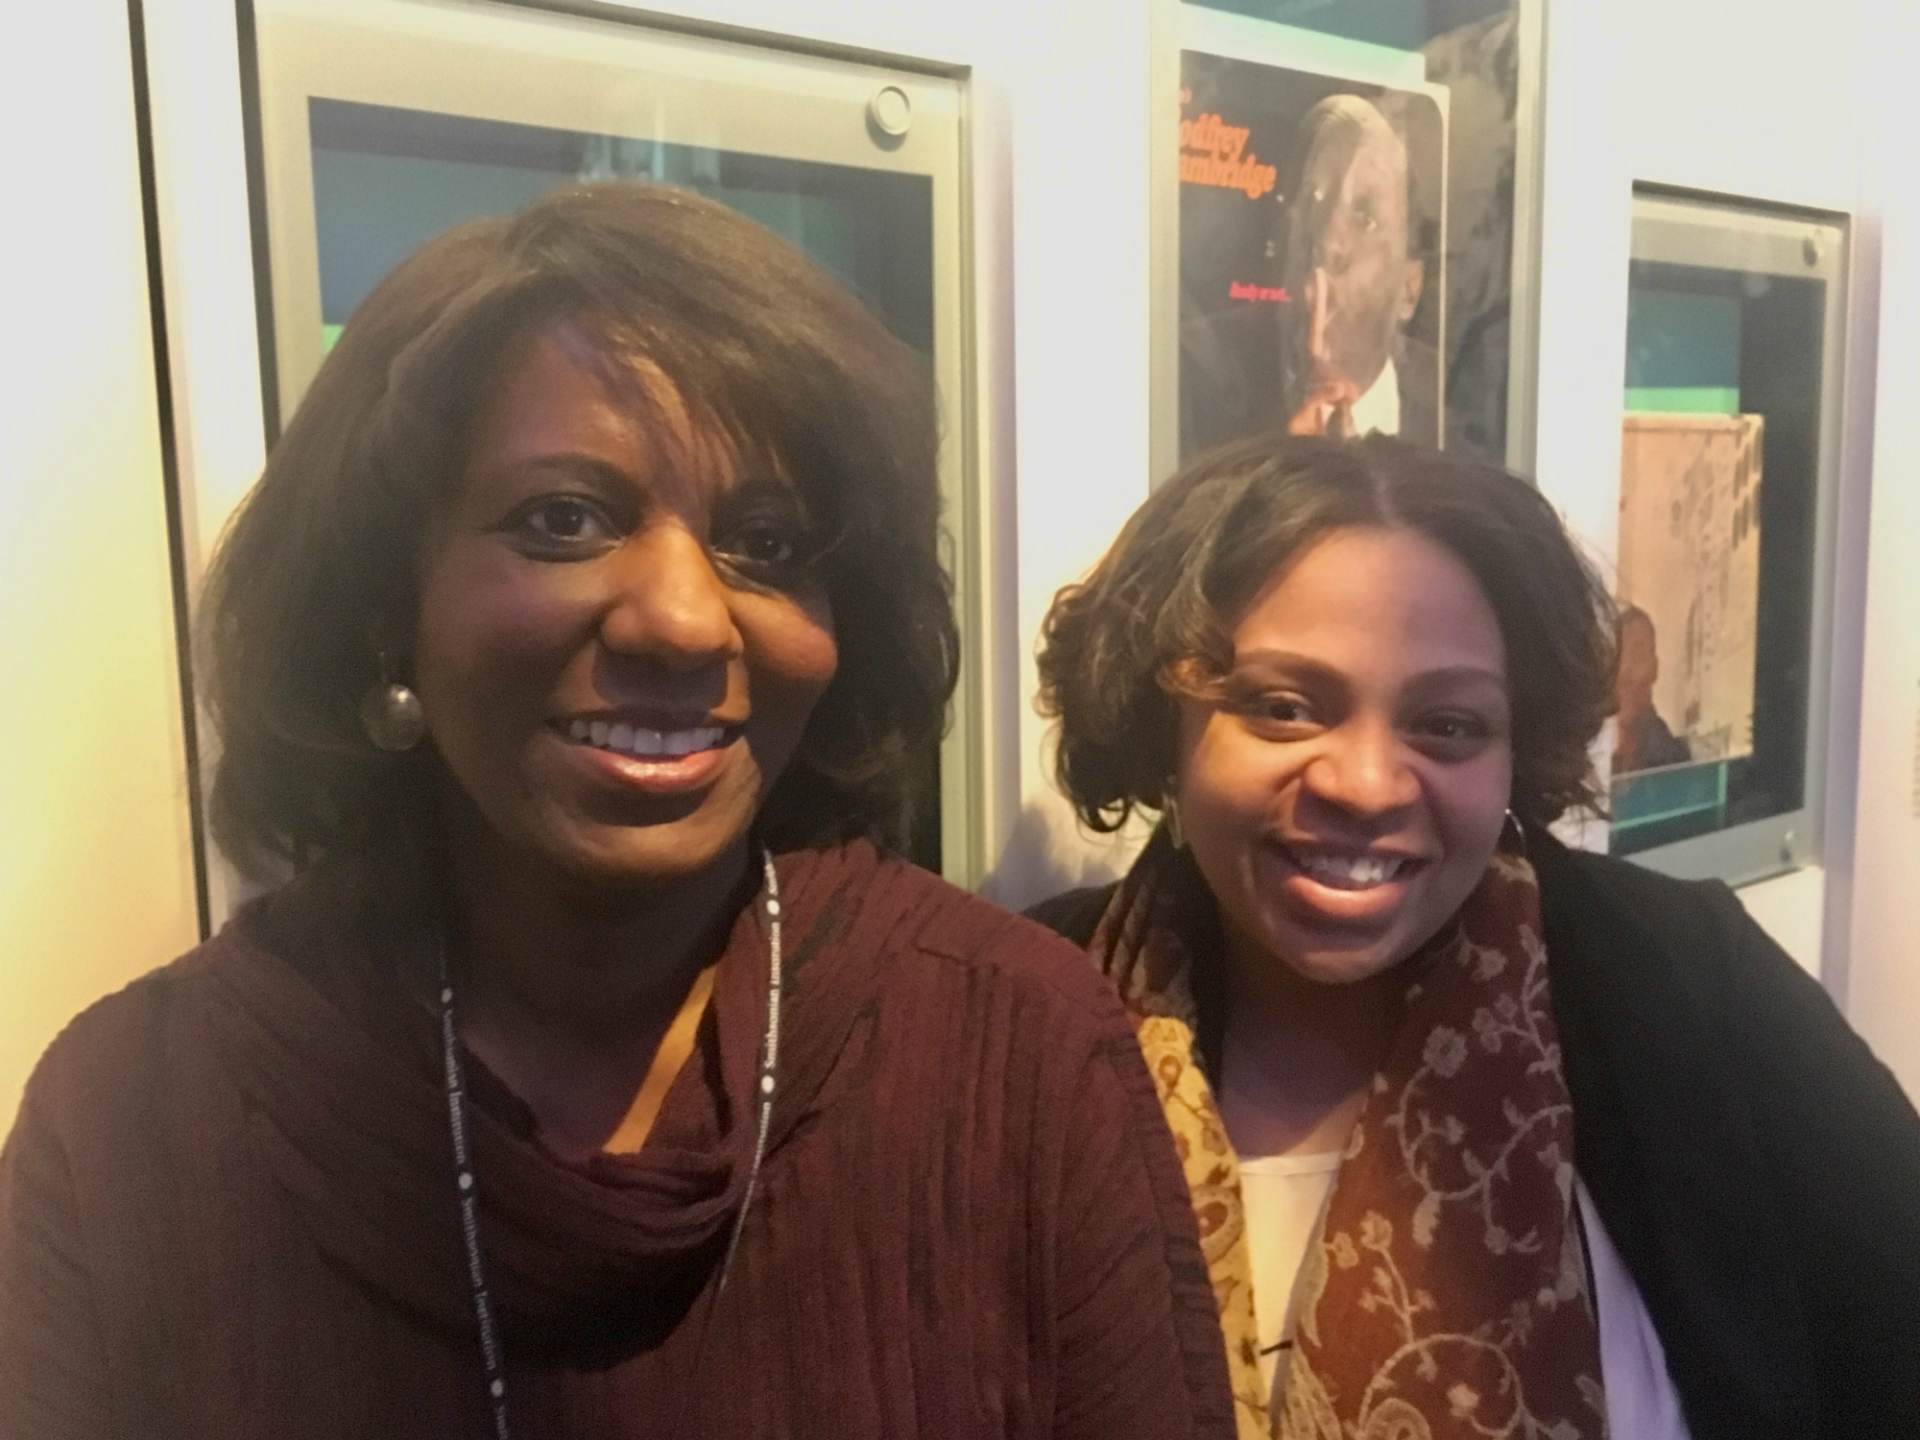 Curator and Ford's staff stand near one of the wall exhibits of text at the Smithsonian's Natoinal Museum of African American History and Culture